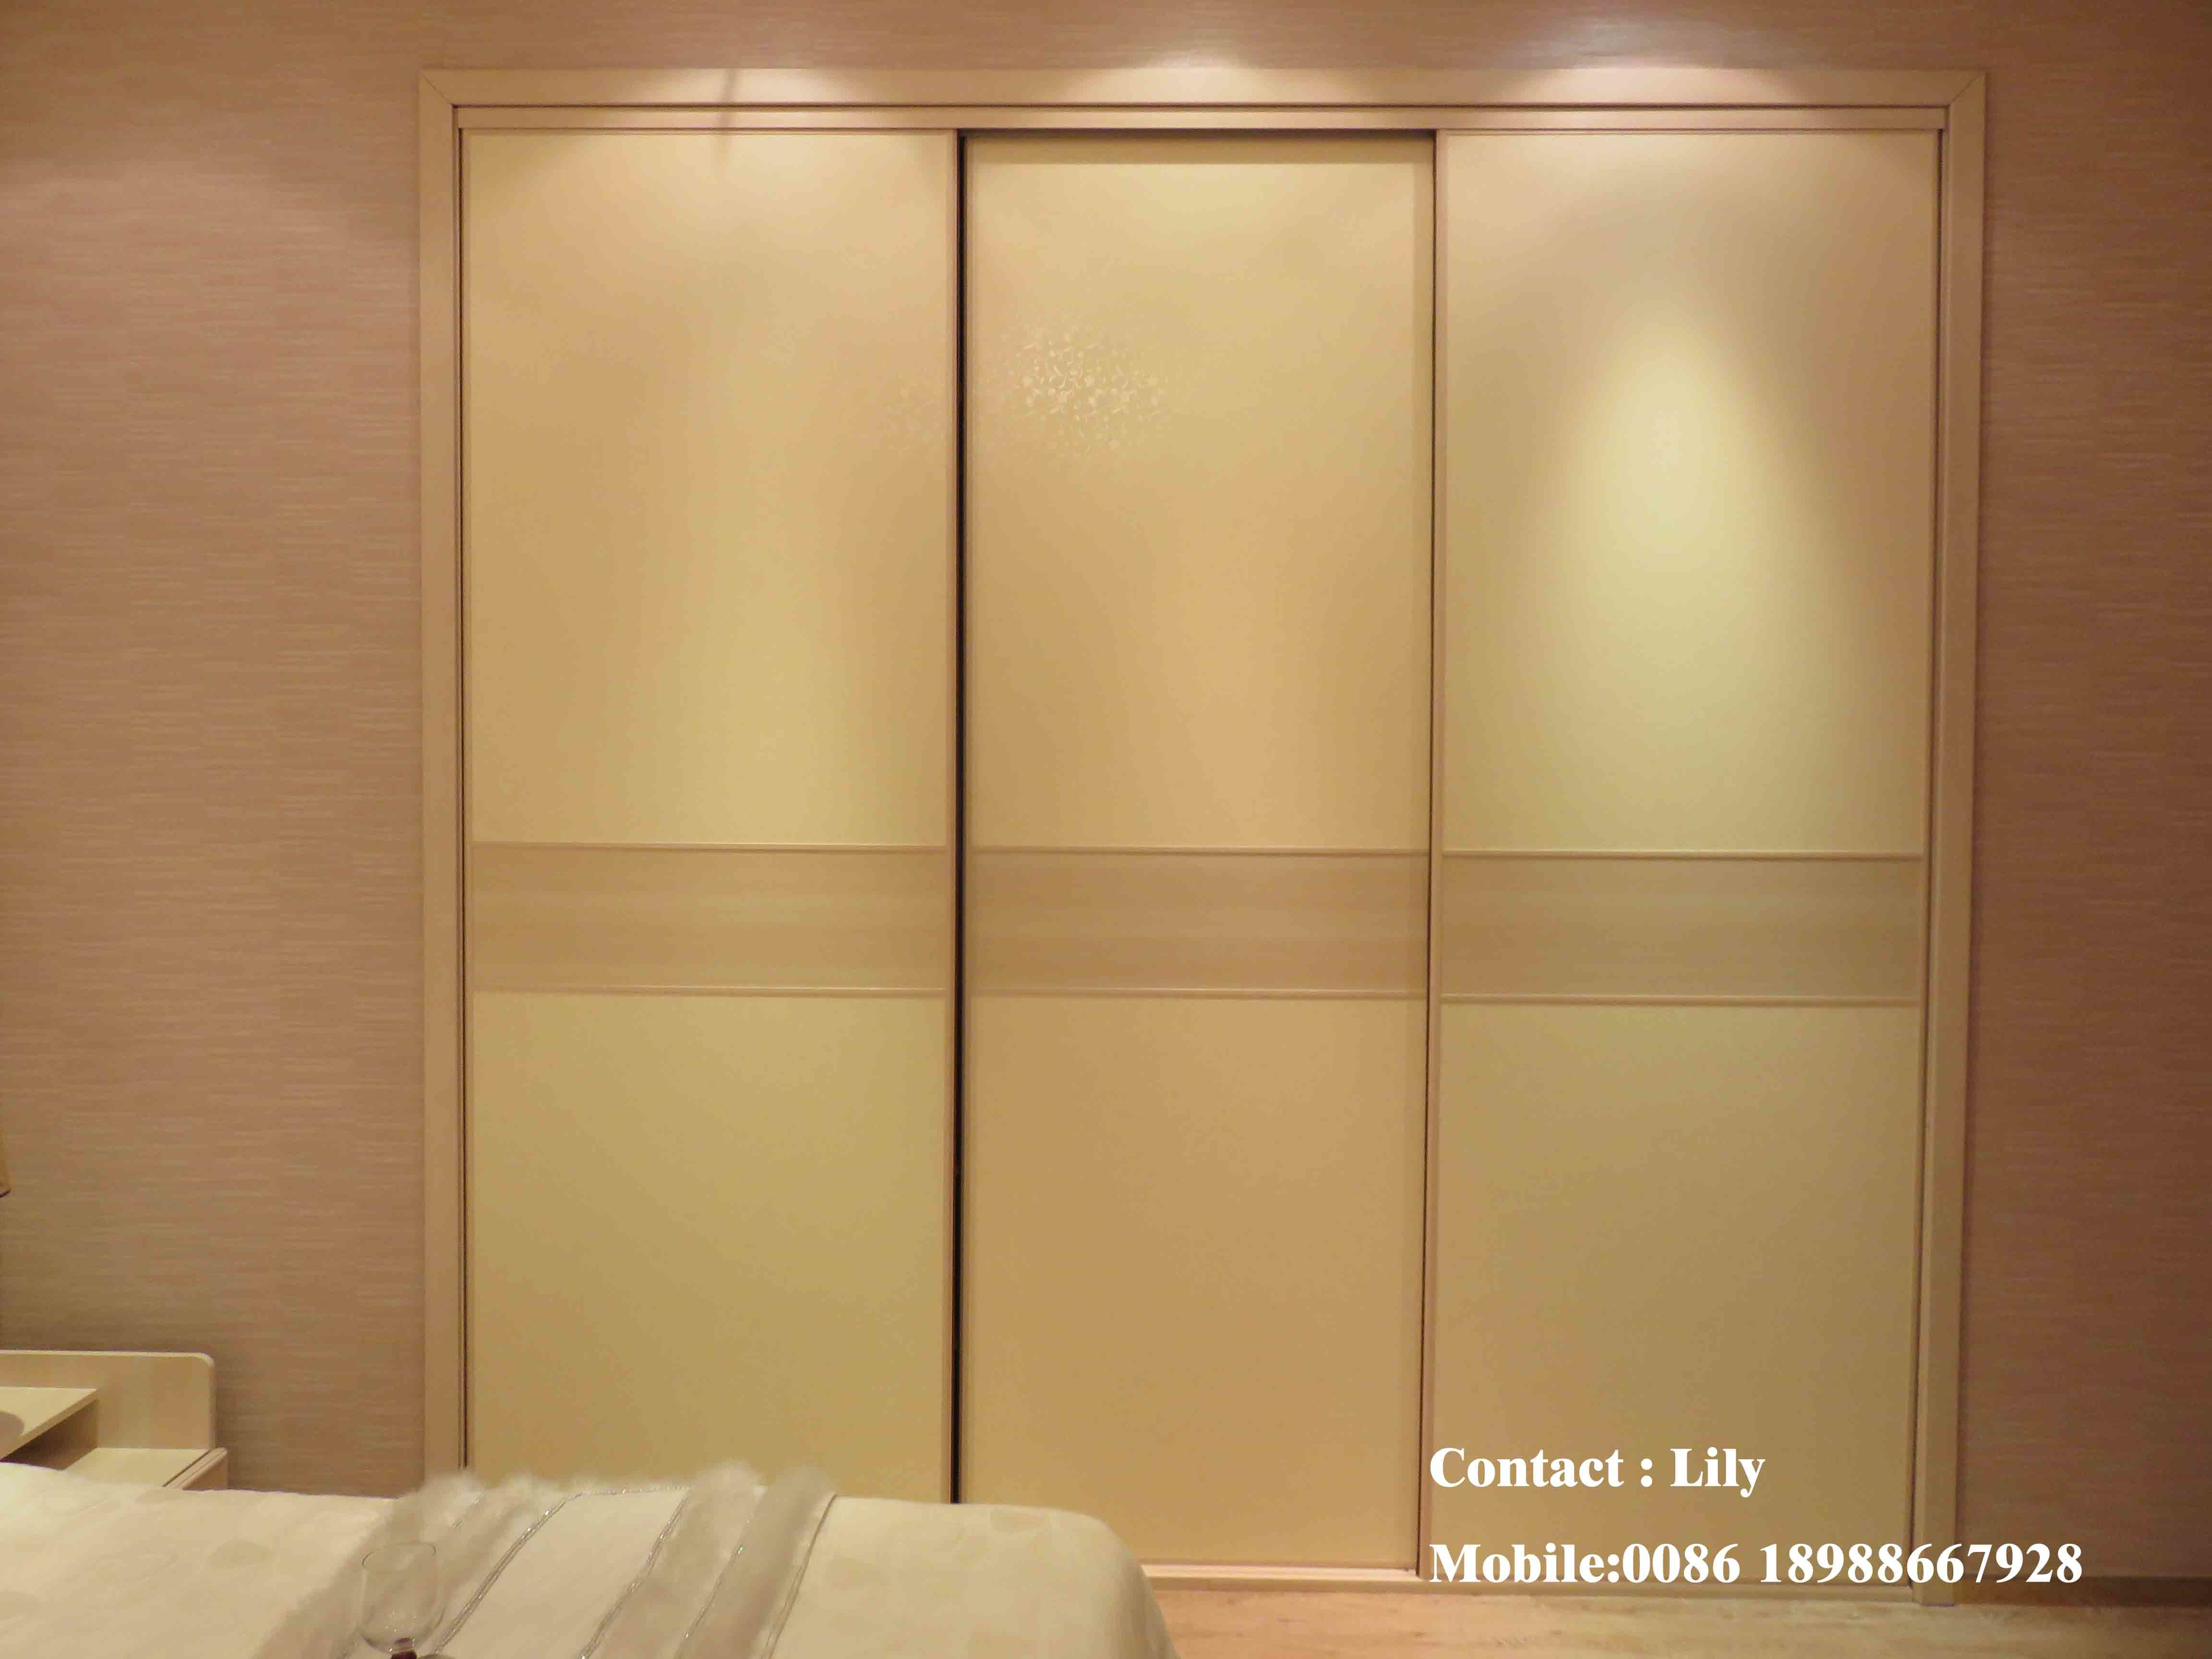 used wardrobes metal luxury armoire decoration wardrobe cabinet perfect storage of